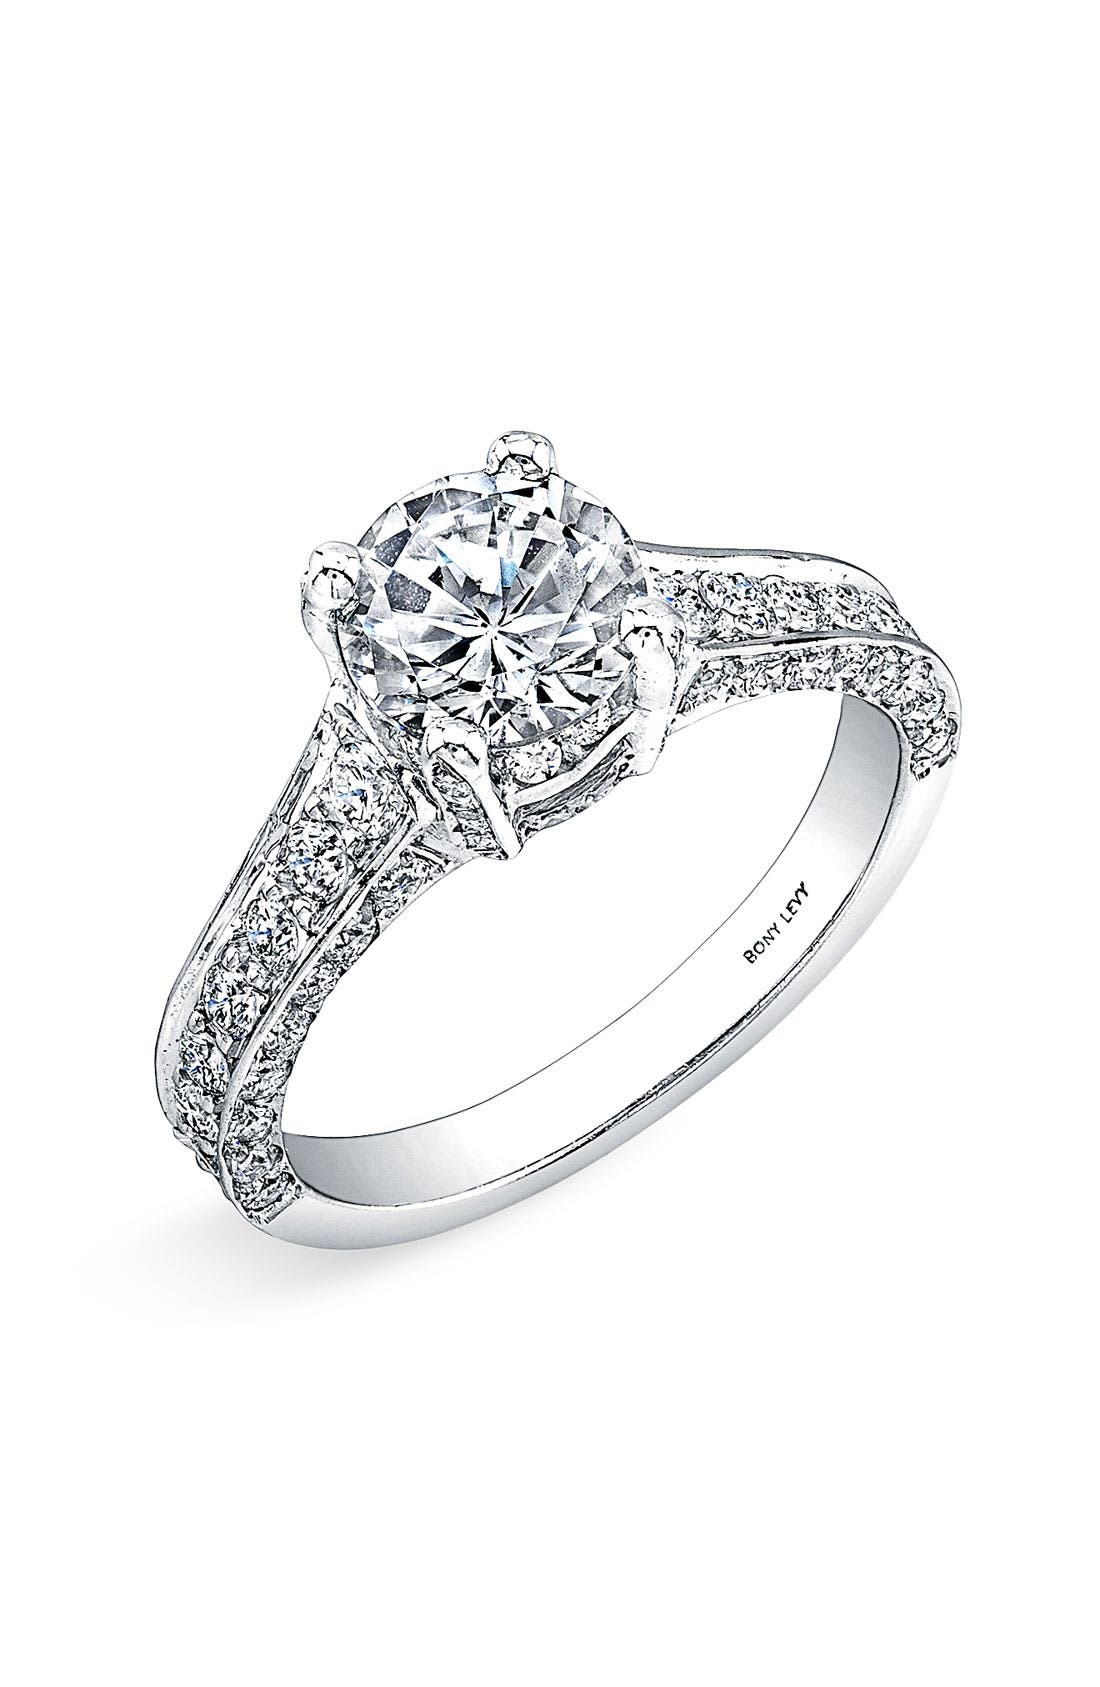 Alternate Image 1 Selected - Bony Levy Pavé Diamond Encrusted Engagement Ring Setting (Nordstrom Exclusive)